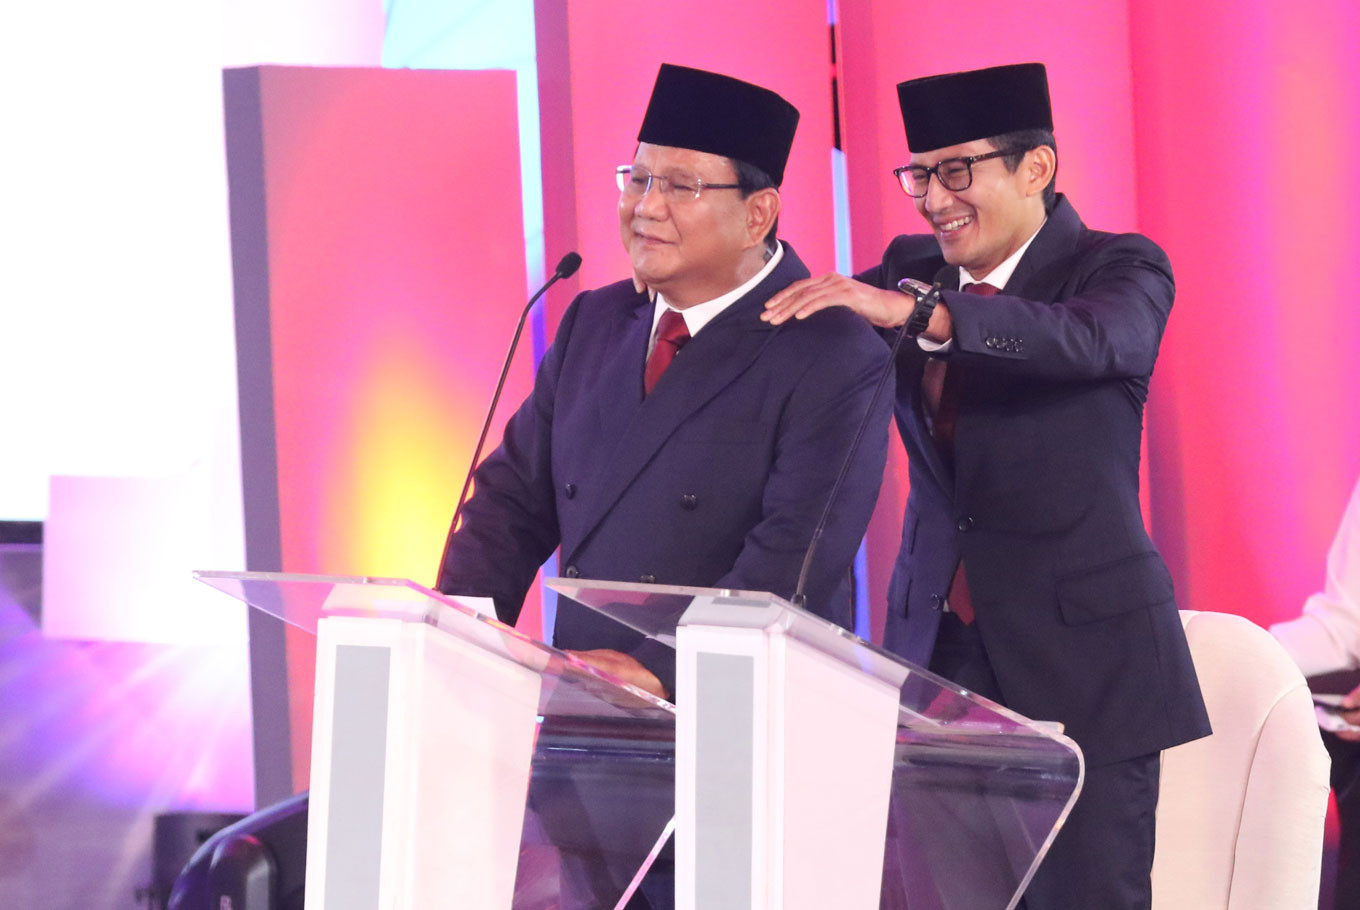 Sandiaga's pledge to revise ITE law meets with skepticism